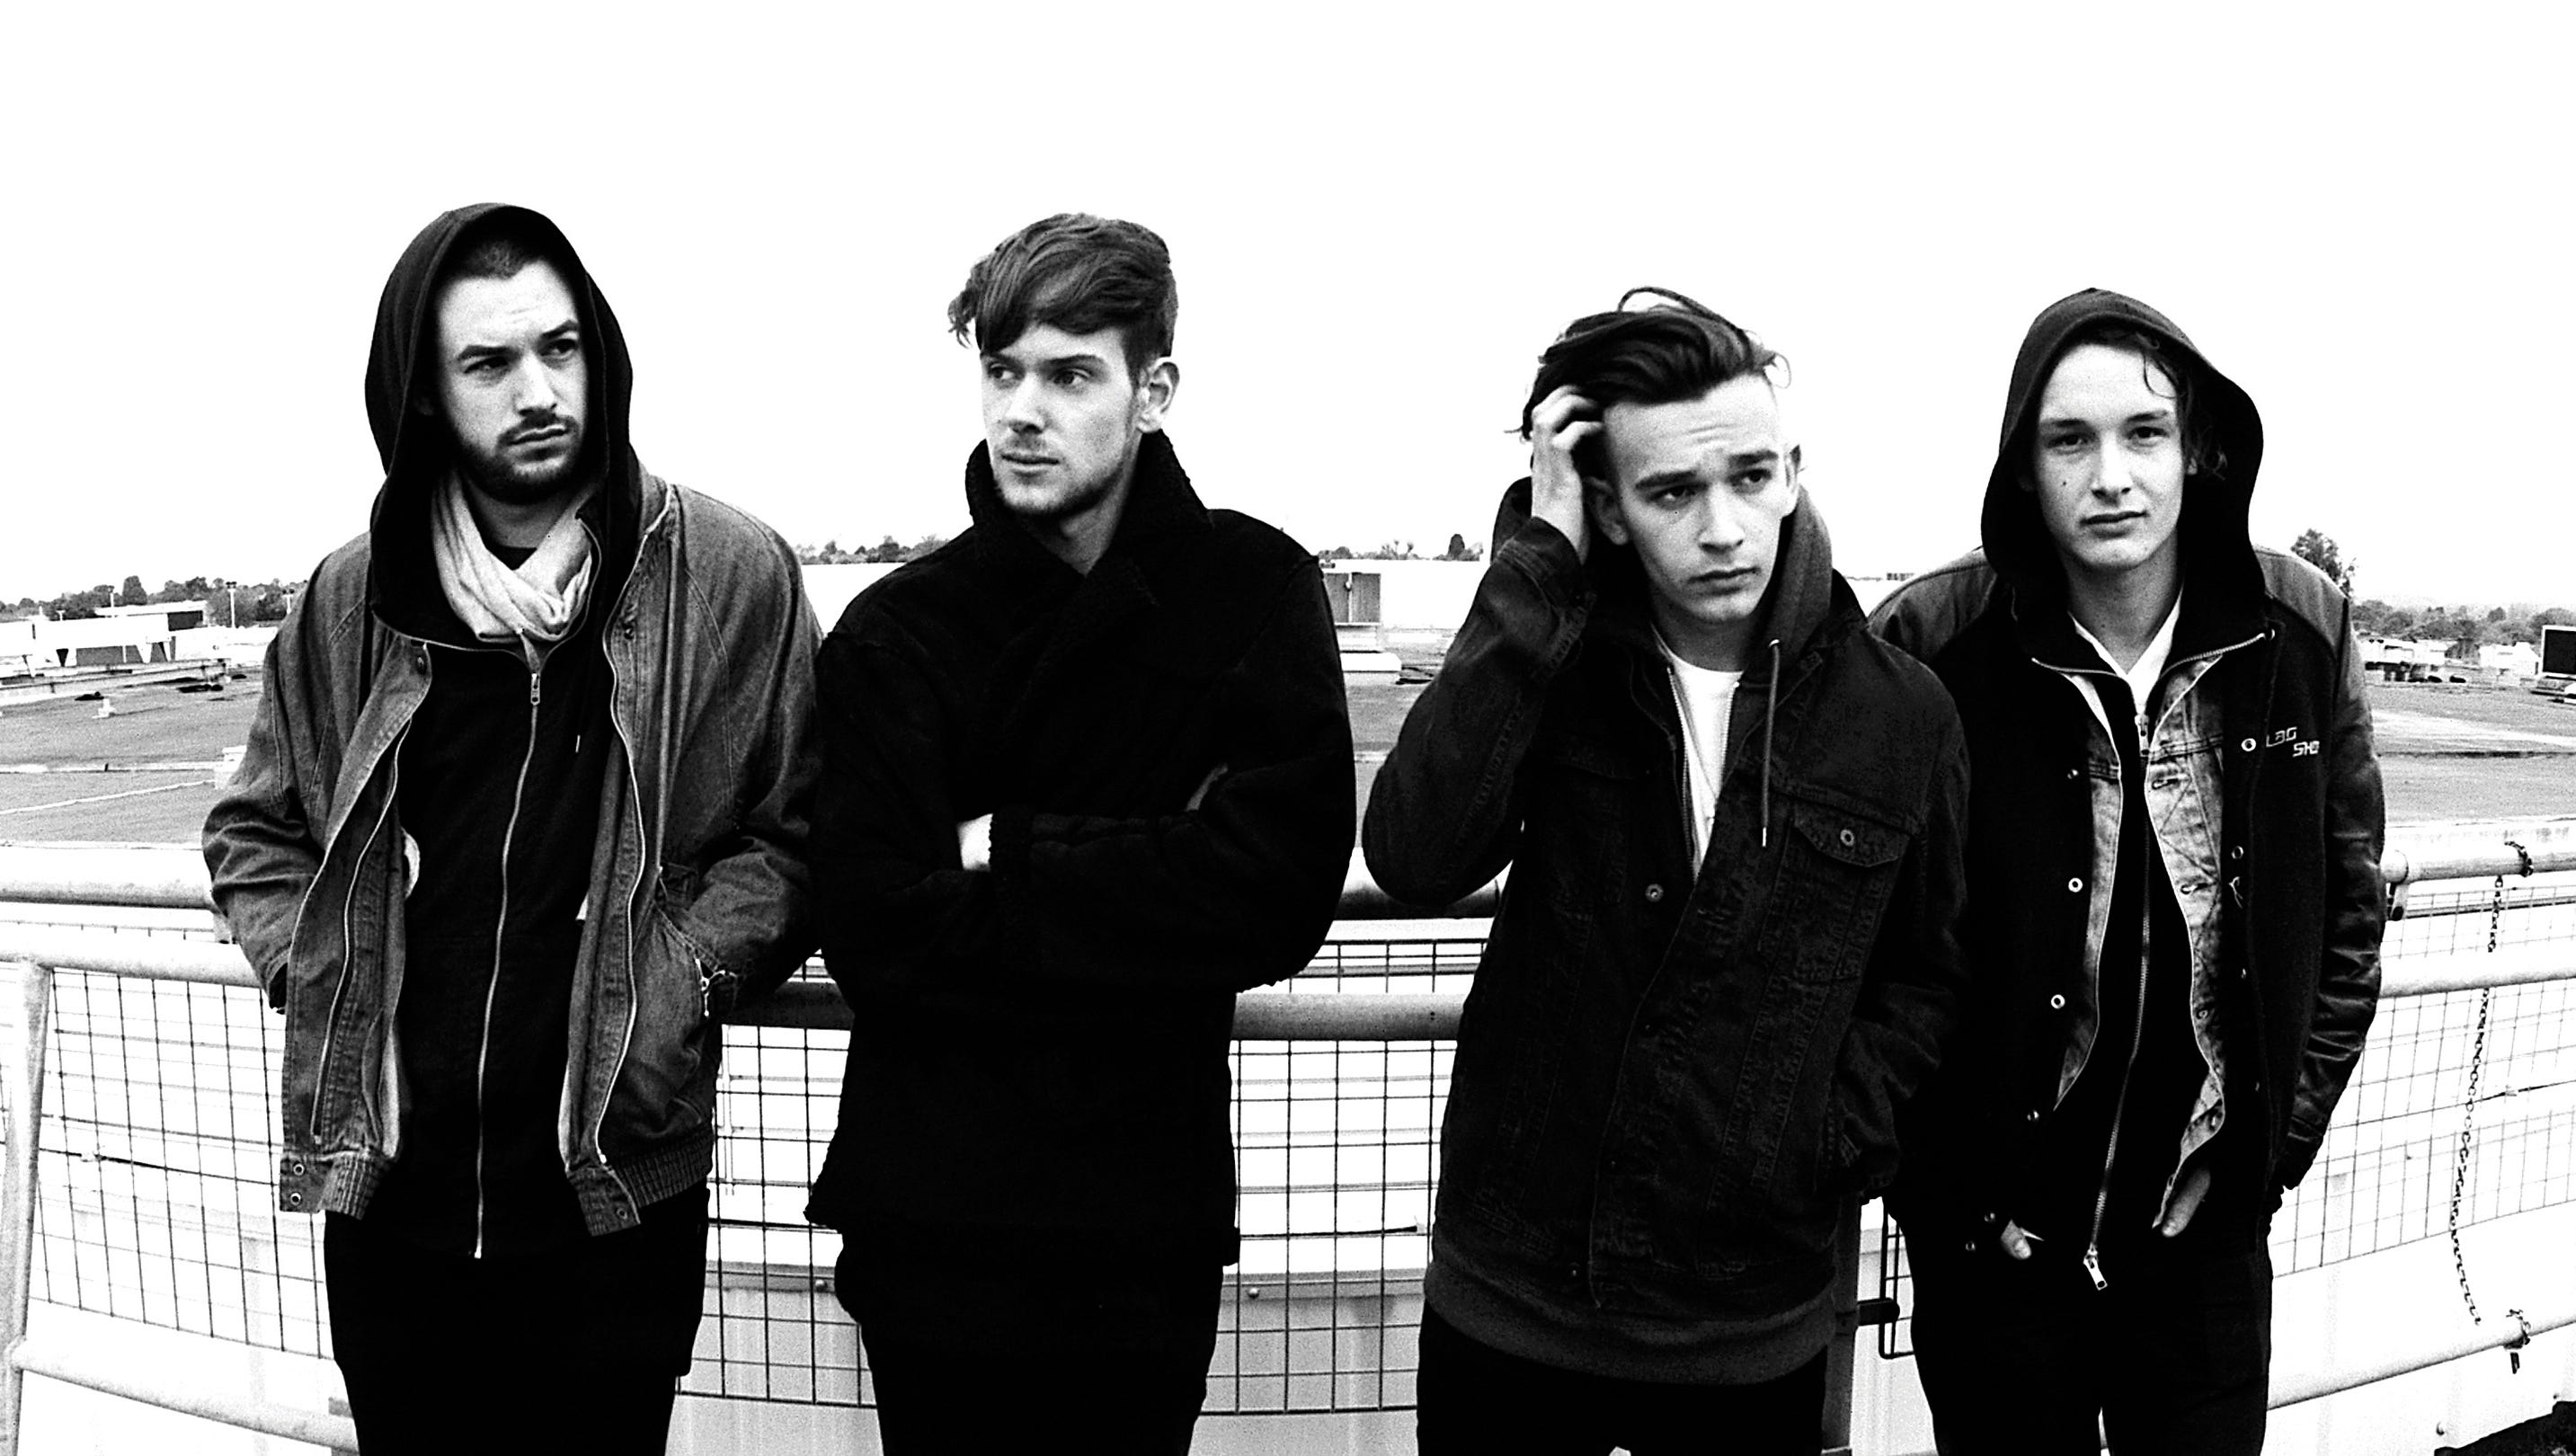 On the Verge: 2013 was a good year for The 1975